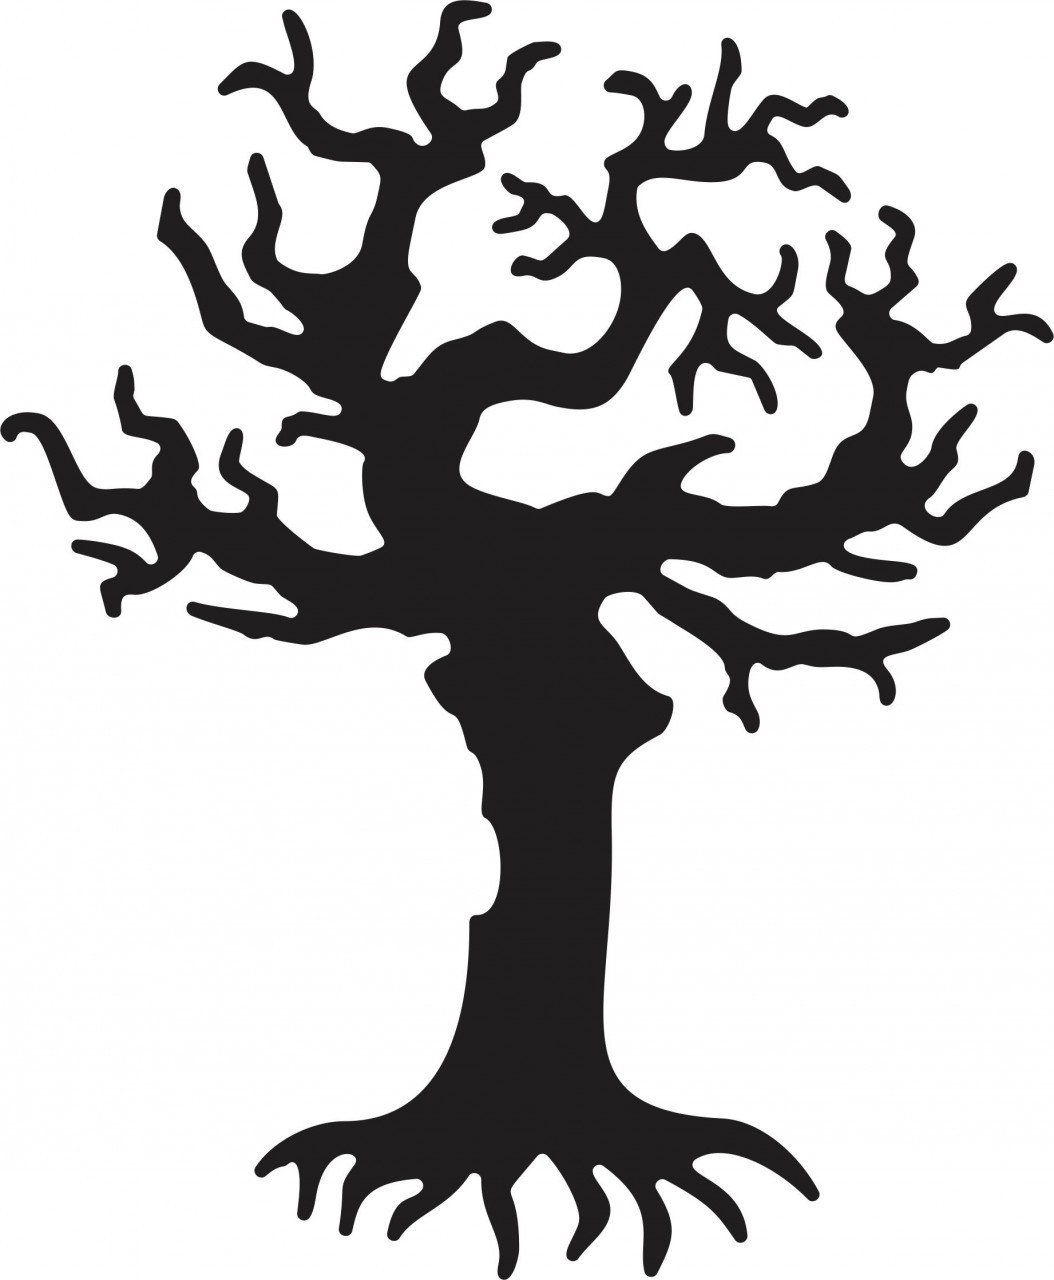 Horror clipart spooky tree Free Tree Download Art on